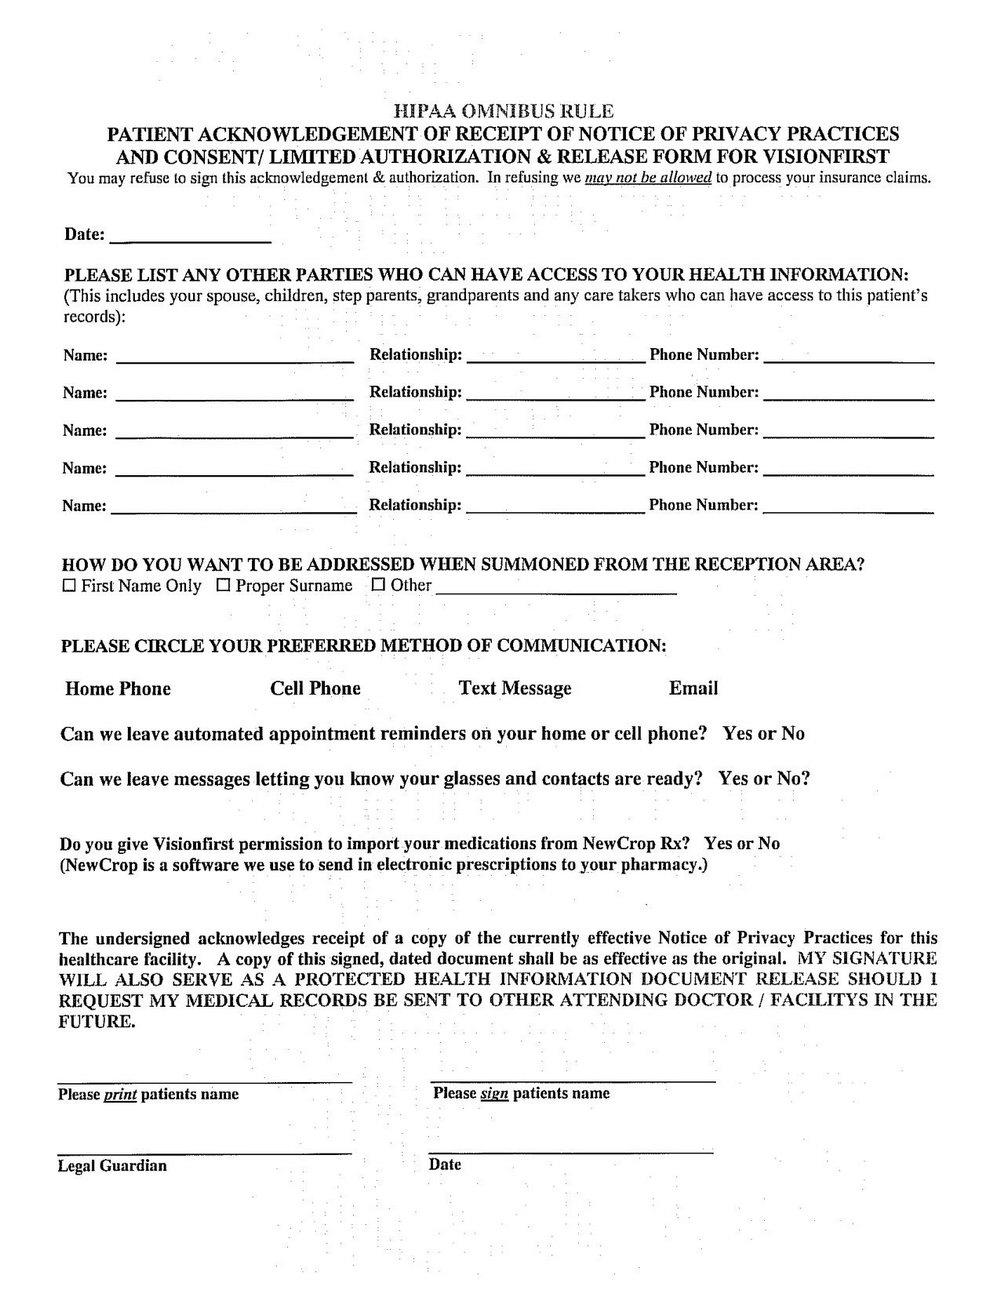 Hipaa Privacy Forms For Patients